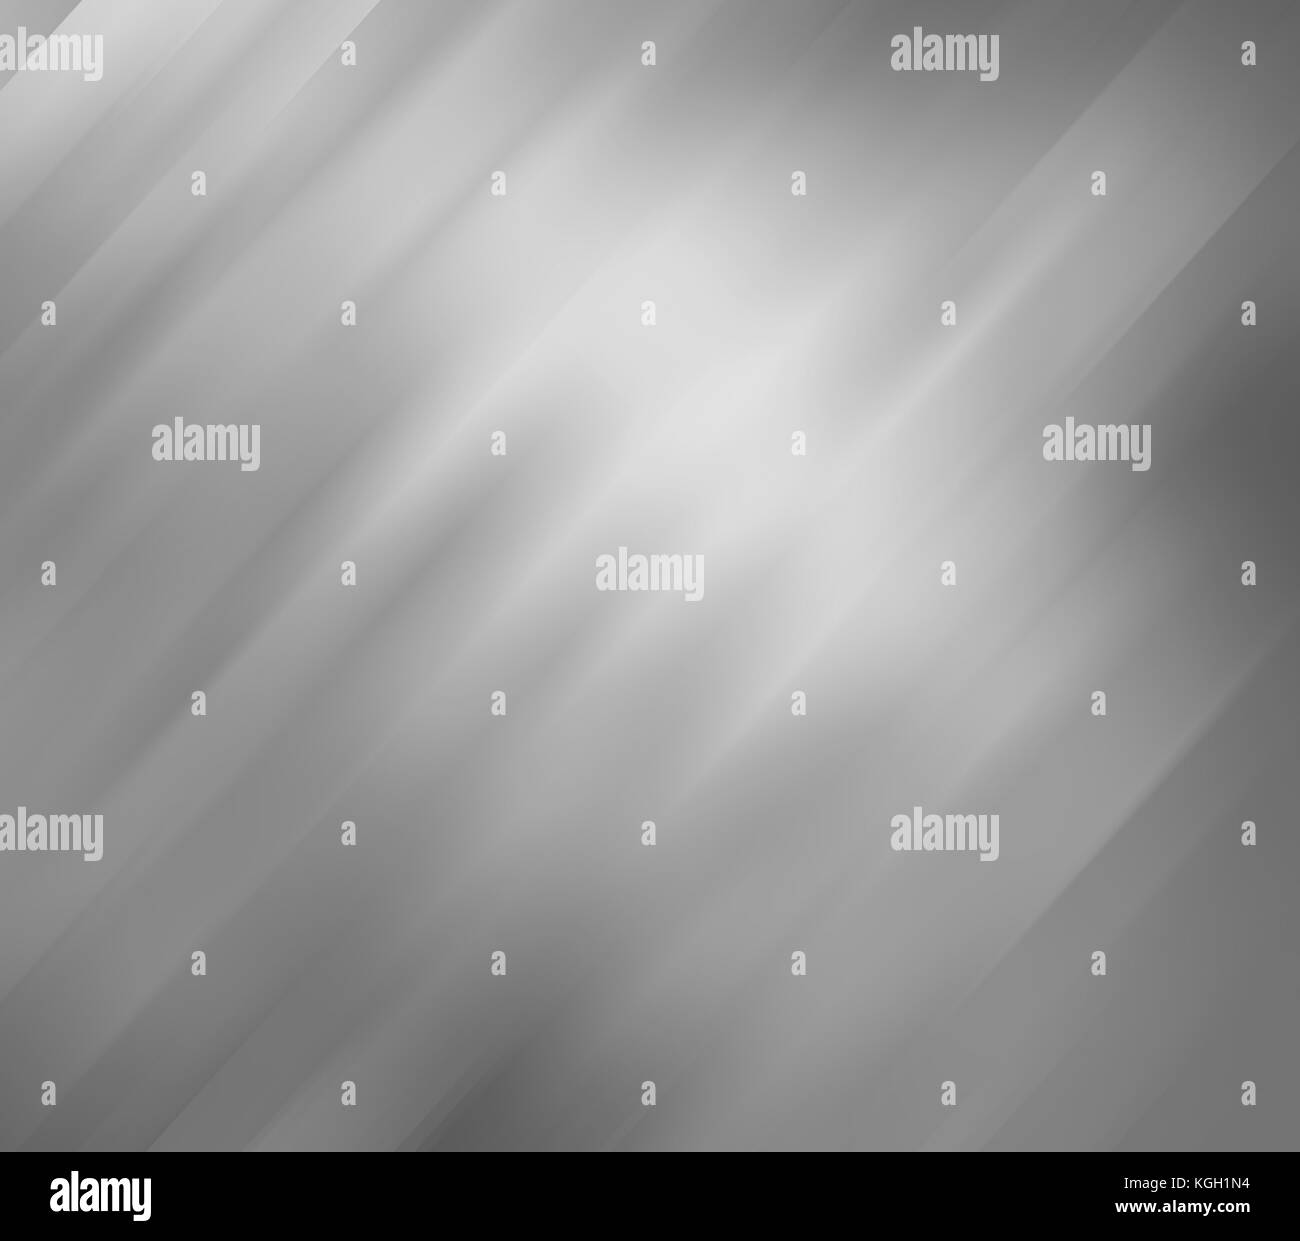 elegant burnished silver background with motion blur texture design, grey or black and white background color - Stock Image